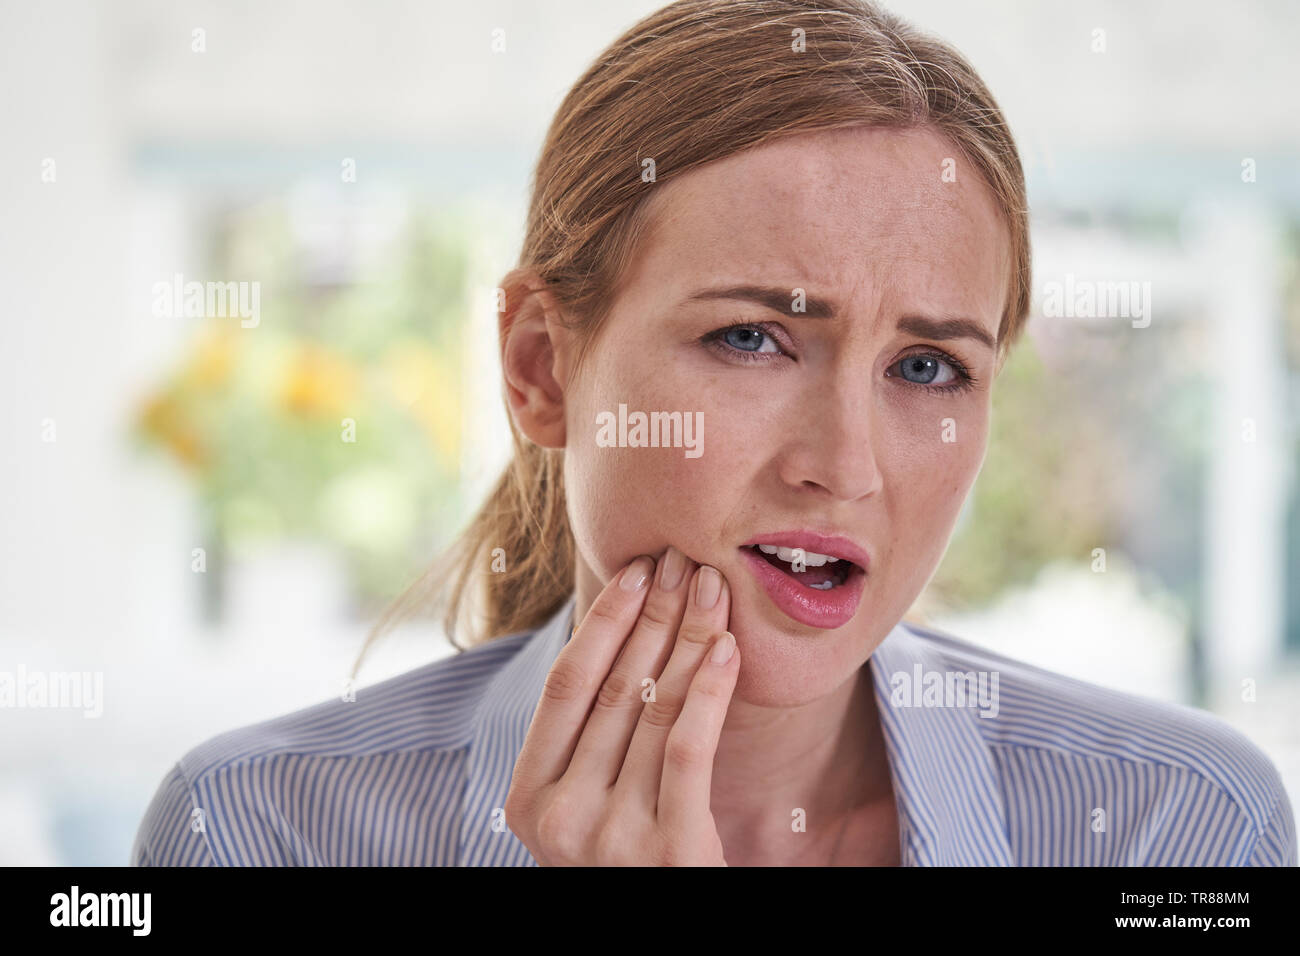 Portrait Of Young Woman Suffering With Toothache Touching Jaw - Stock Image